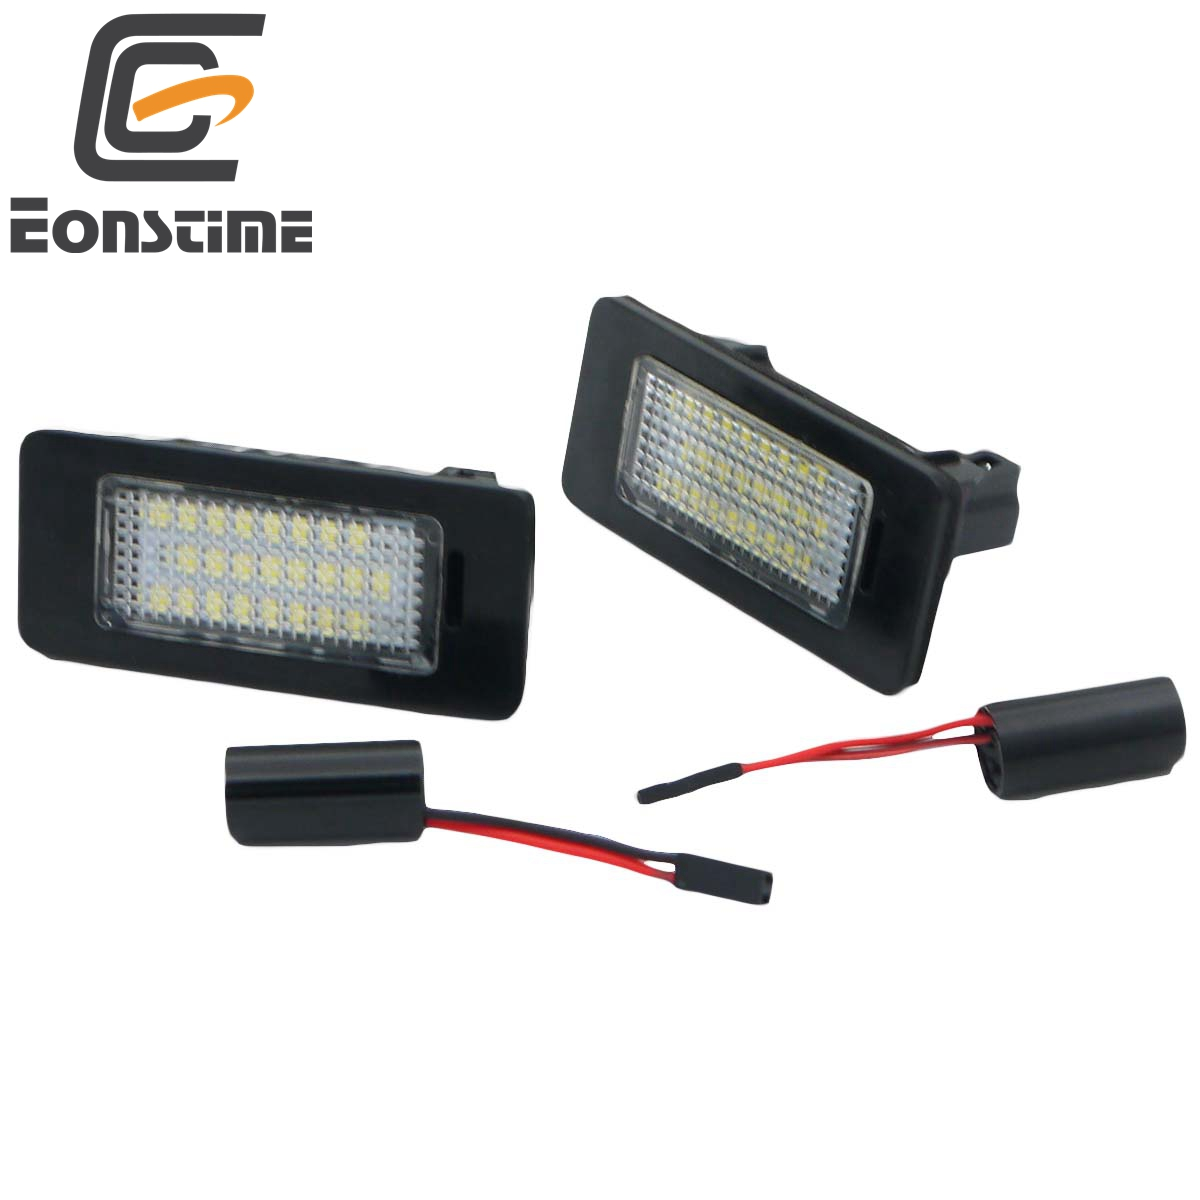 top 10 golf vi lamps brands and get free shipping - a1b29klf